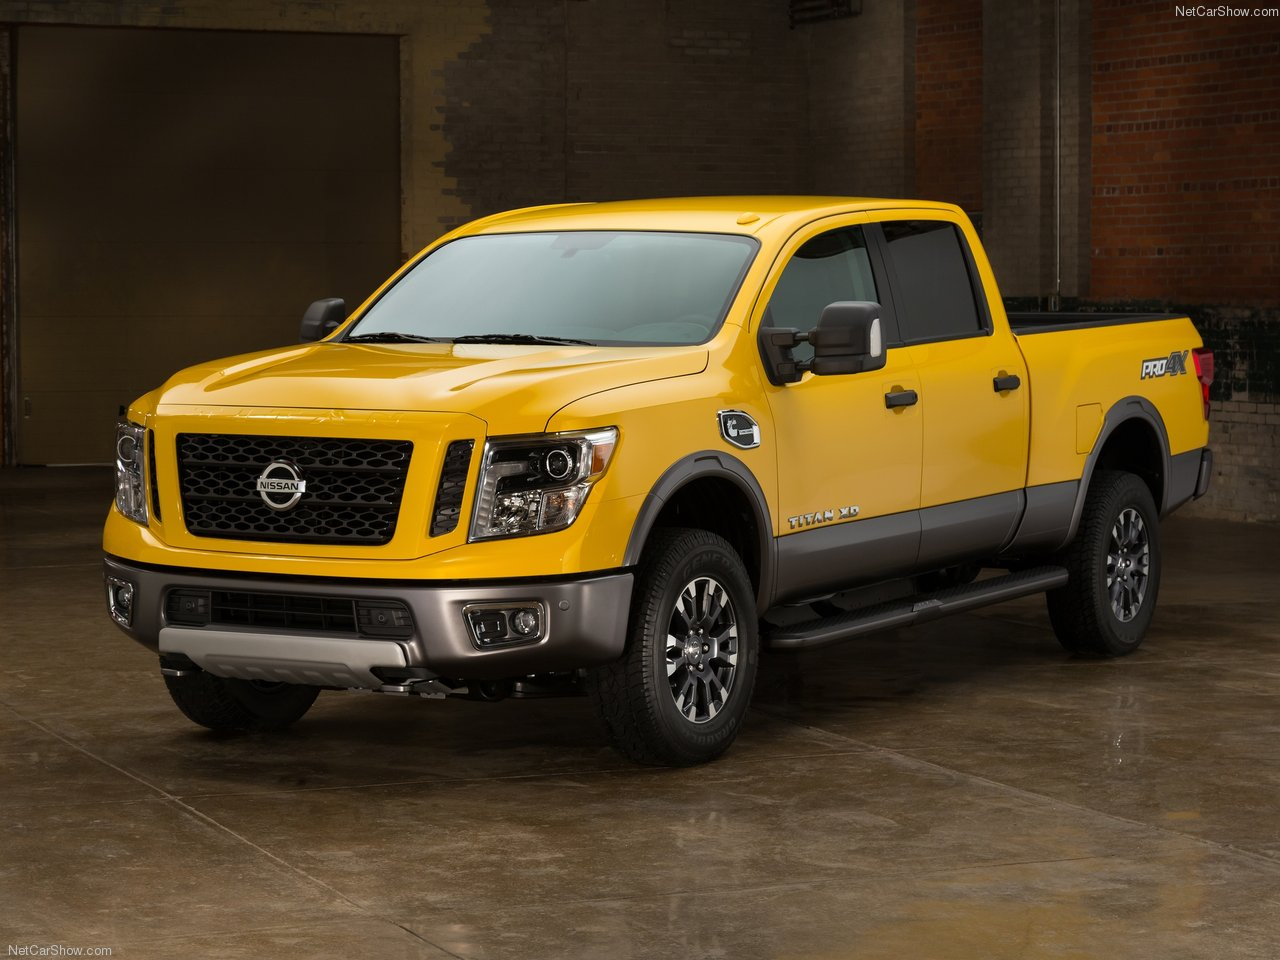 Nissan Titan XD photo 141375